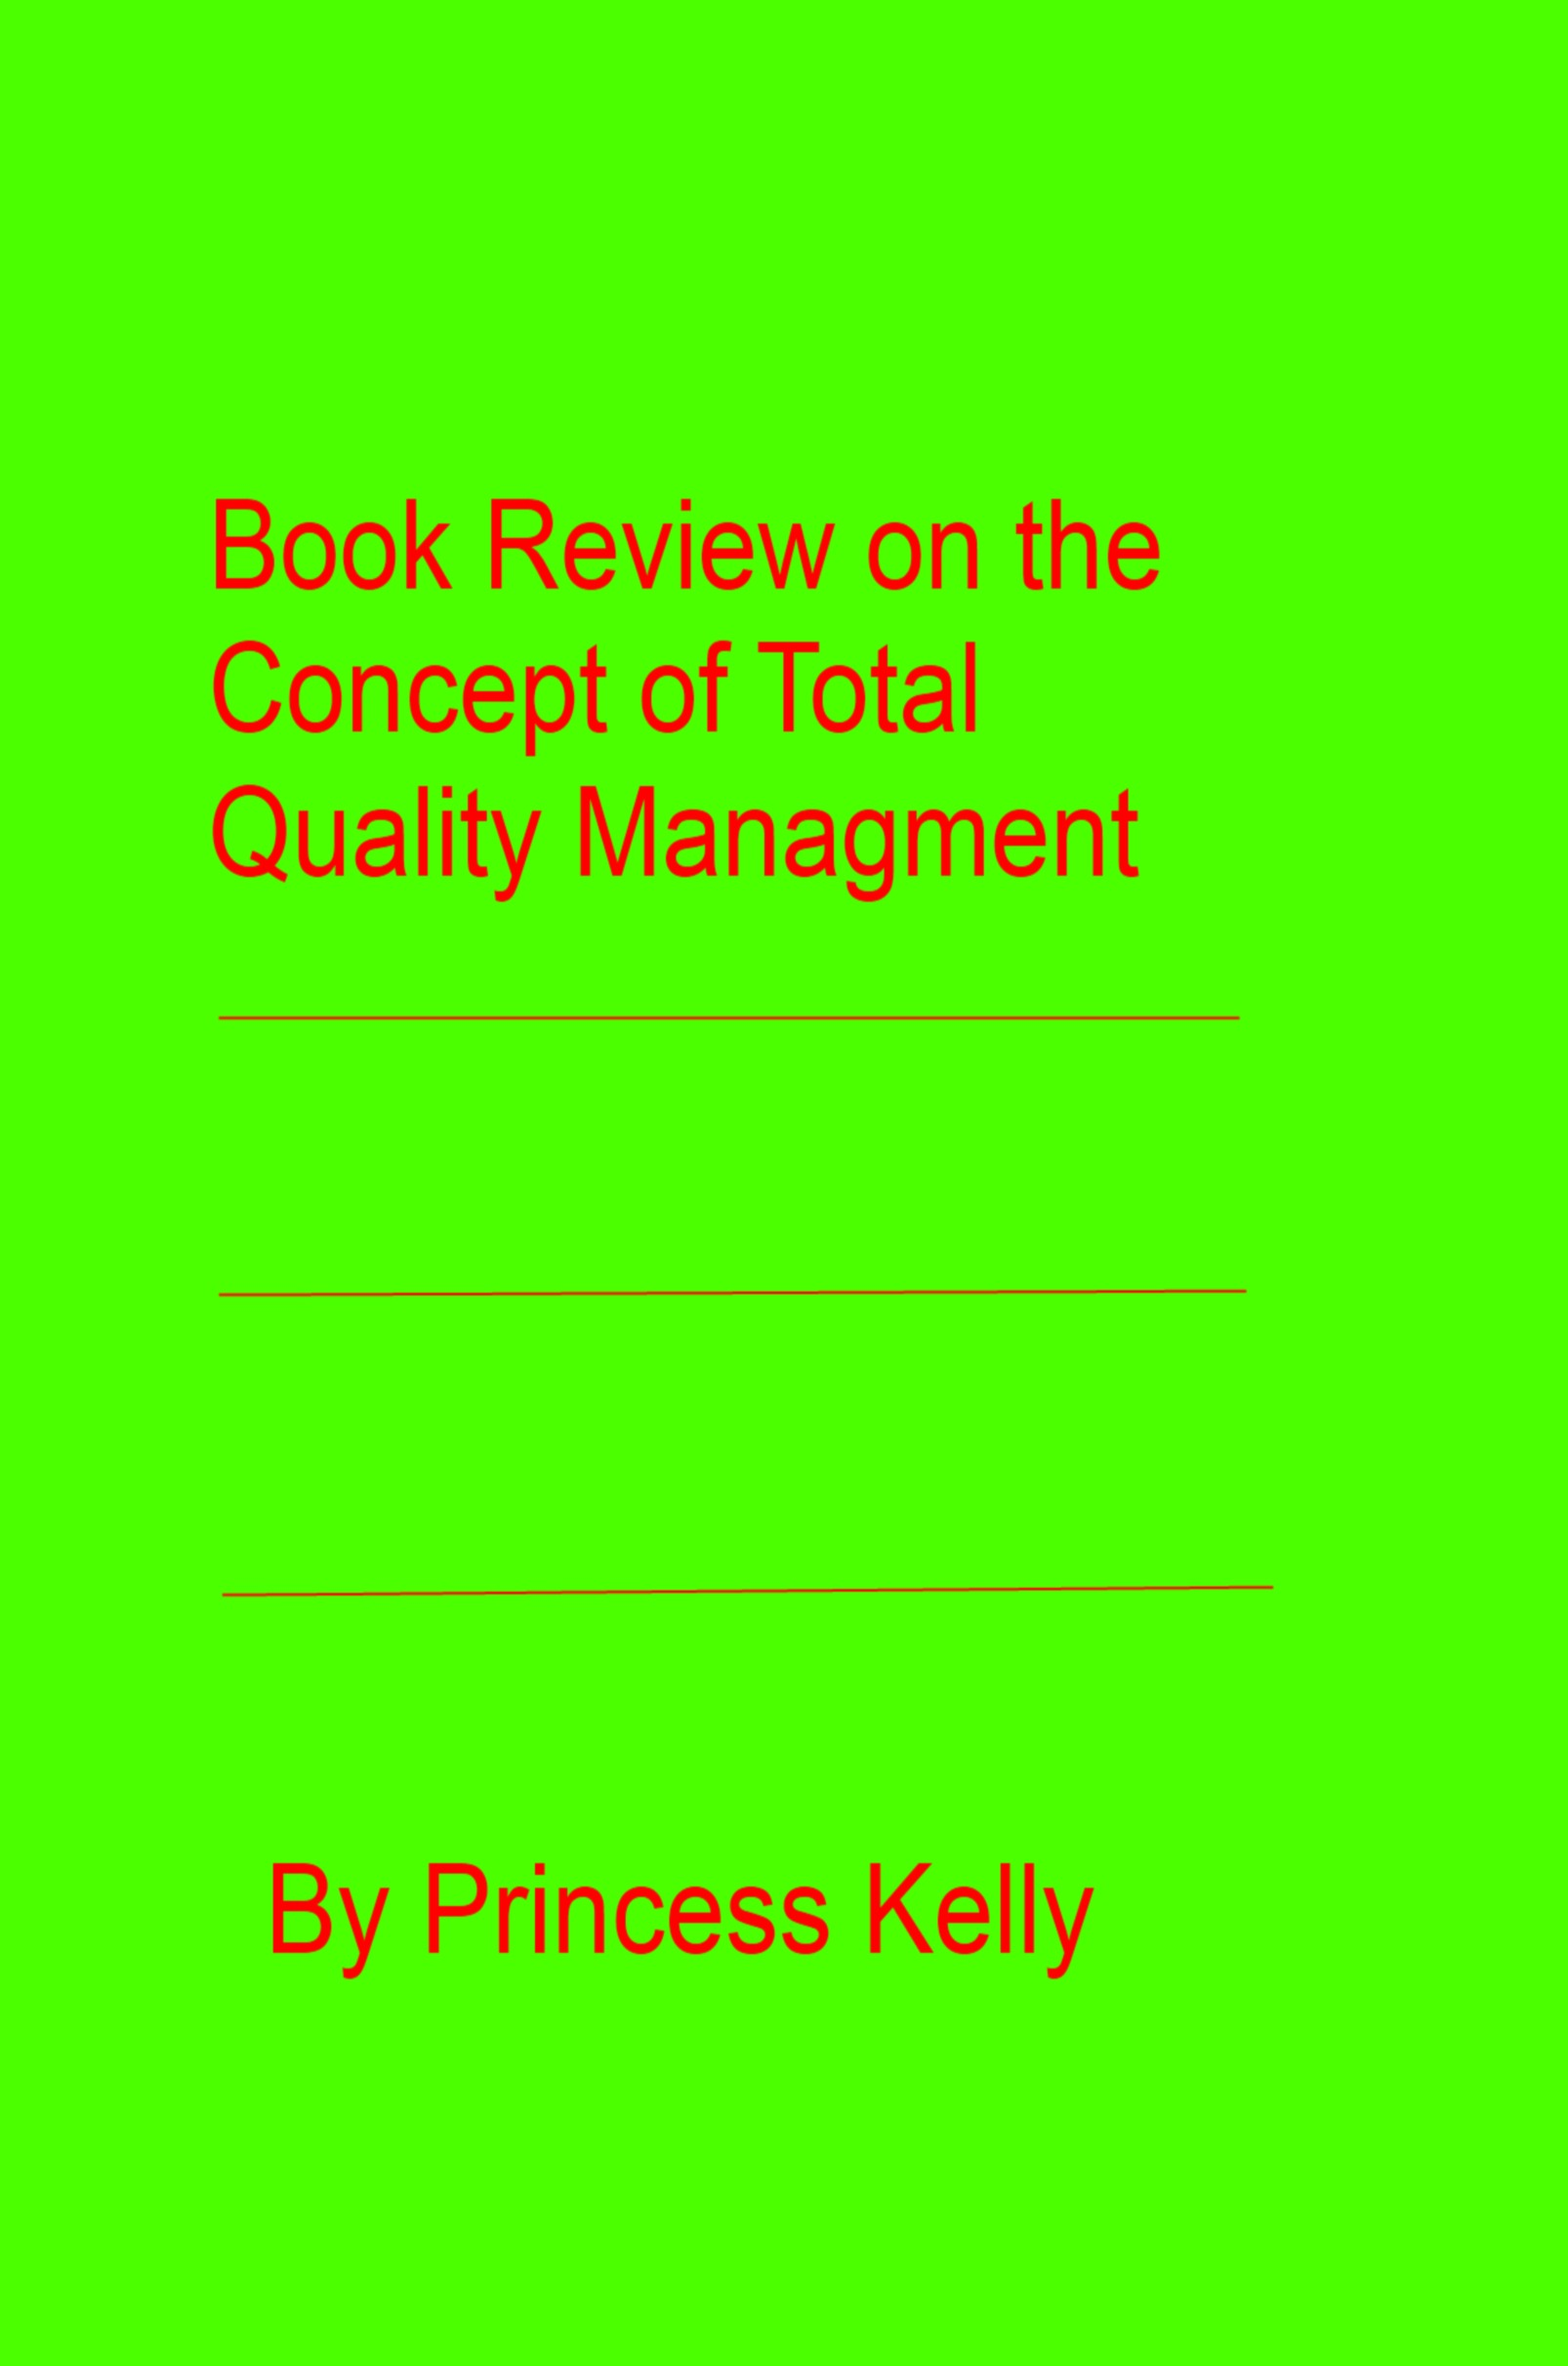 Book Review on the Concept of Total Quality Management